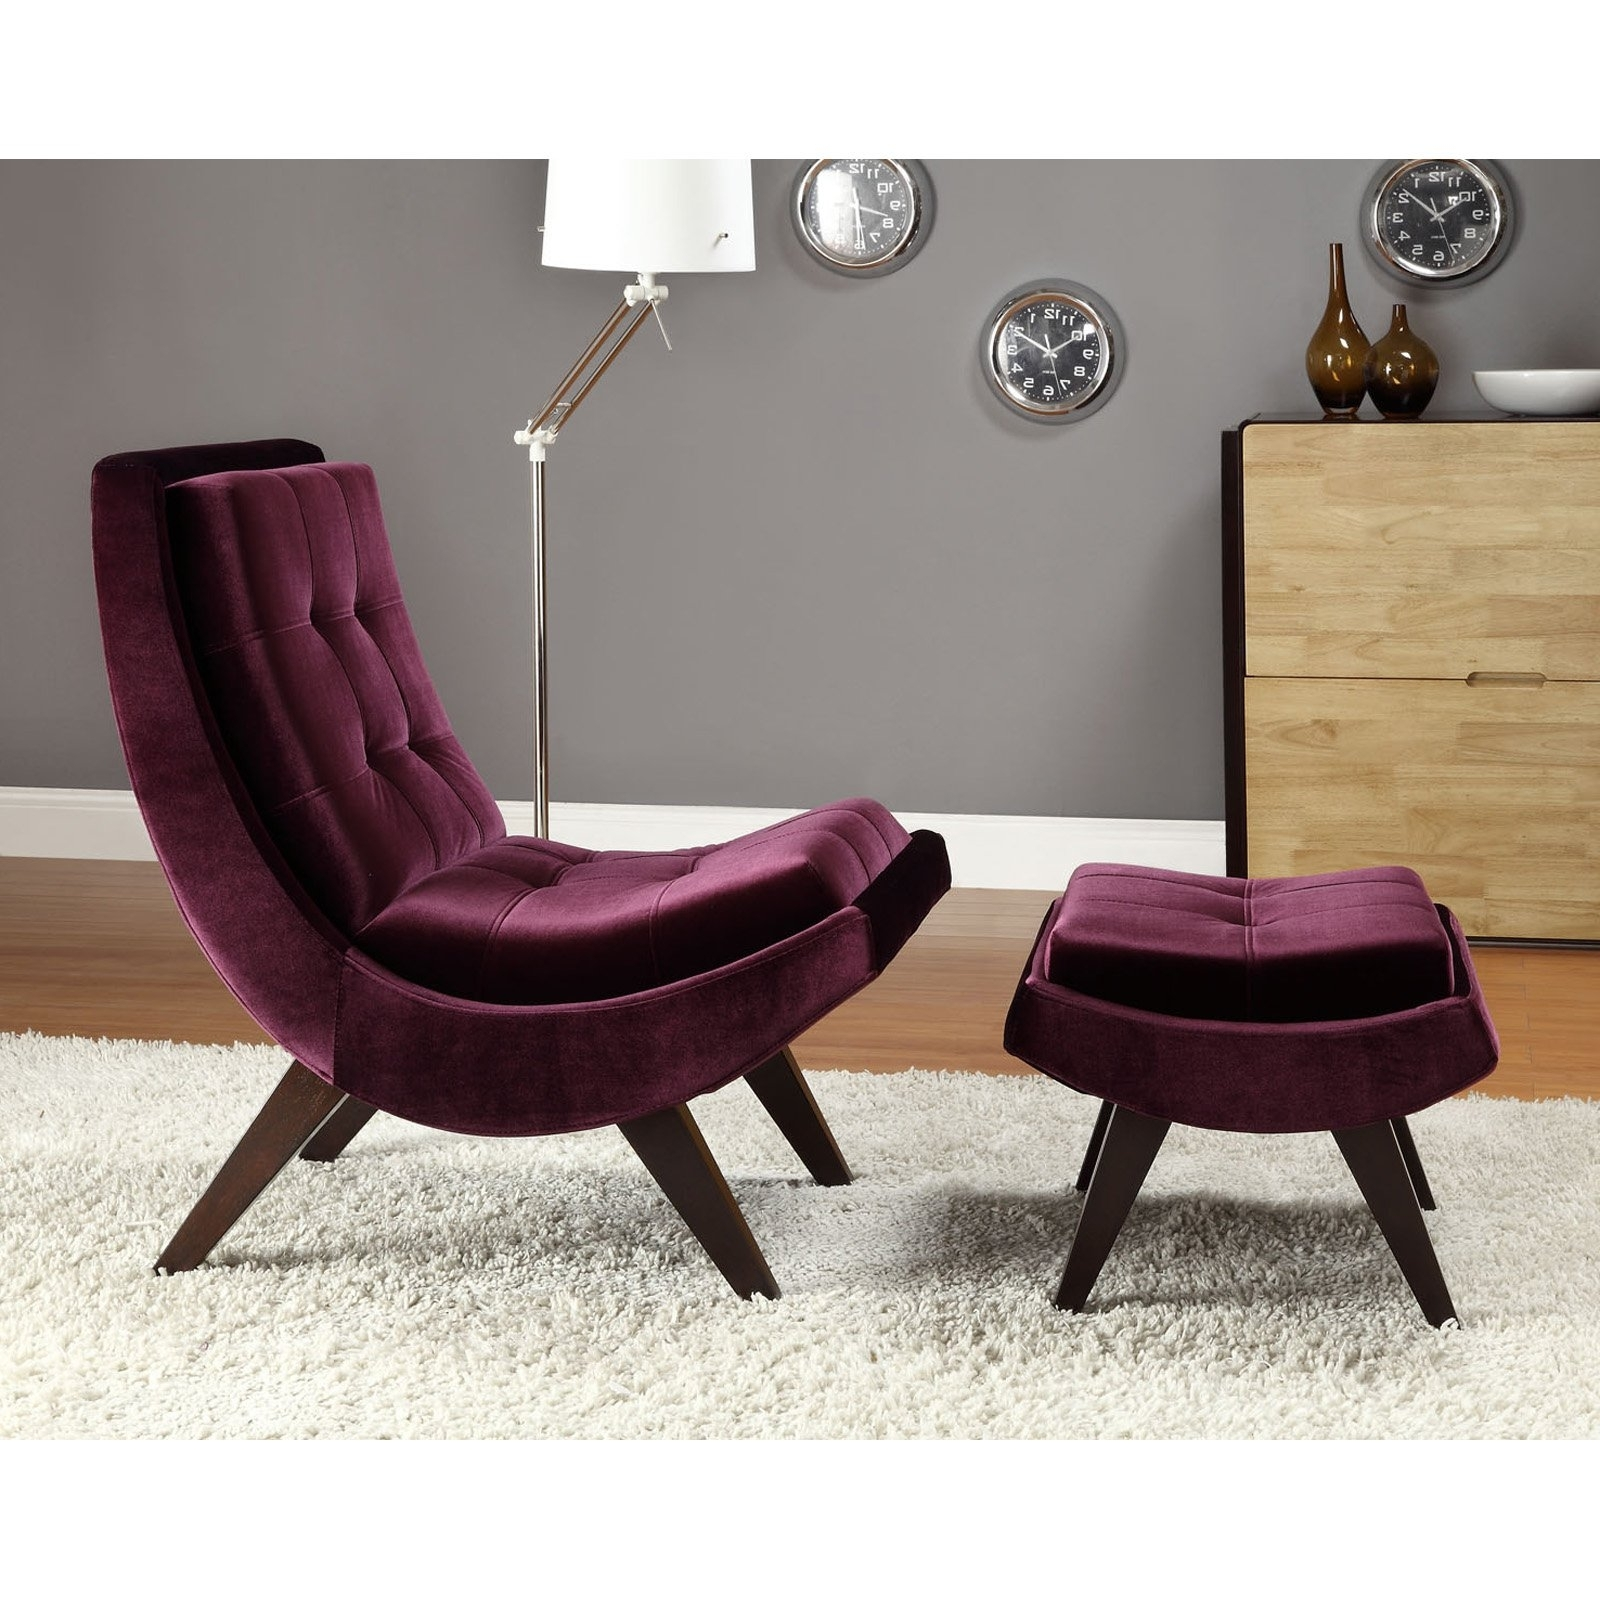 2019 Chairs With Ottoman Within Chelsea Lane Lashay Velvet Lounge Chair & Ottoman – Purple (View 3 of 20)